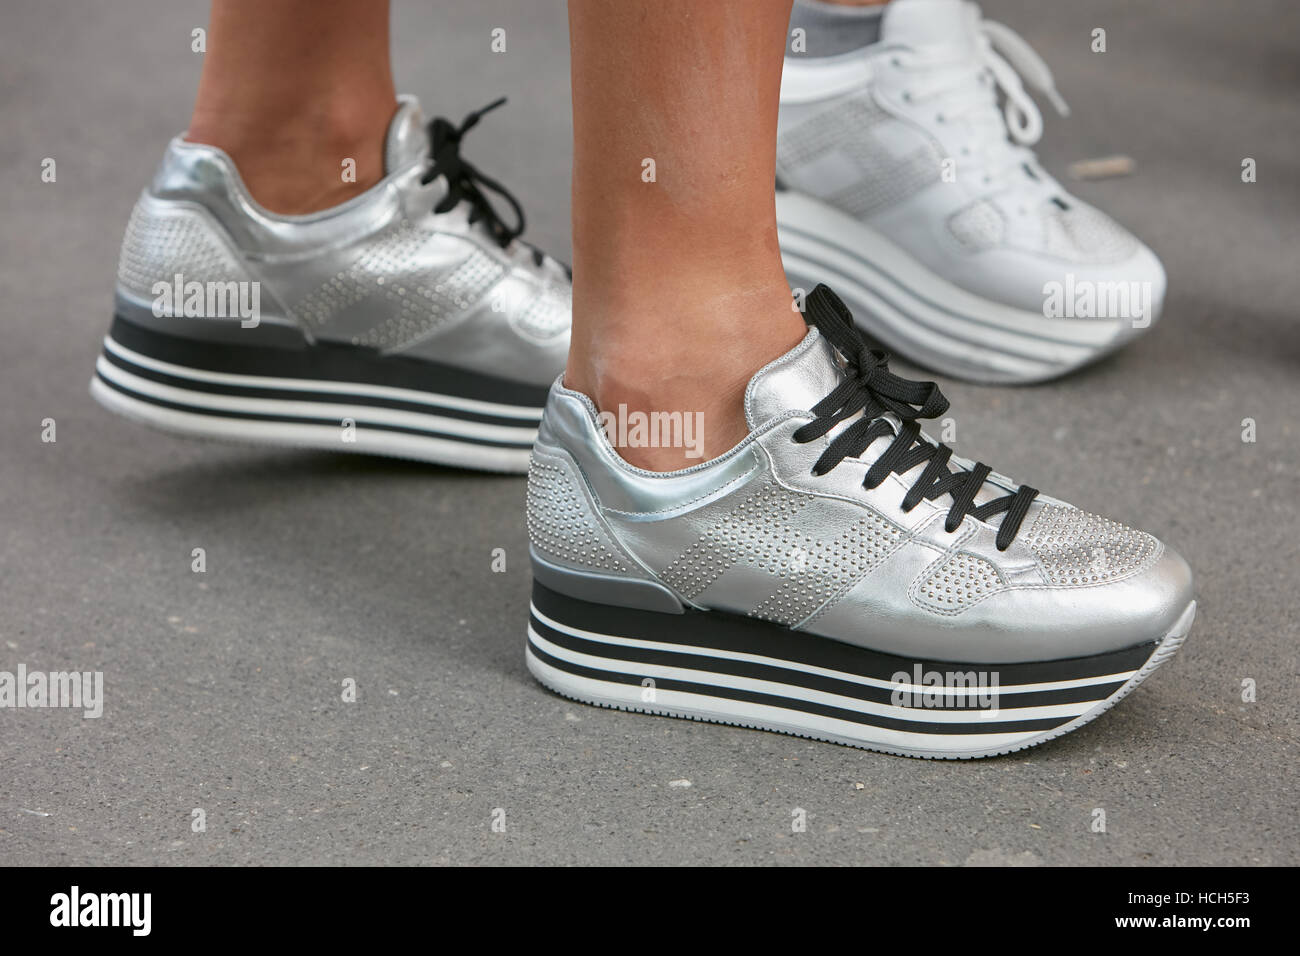 Hogan Shoes Woman With Silver Hogan Shoes Before Fashion Tod S Show Milan